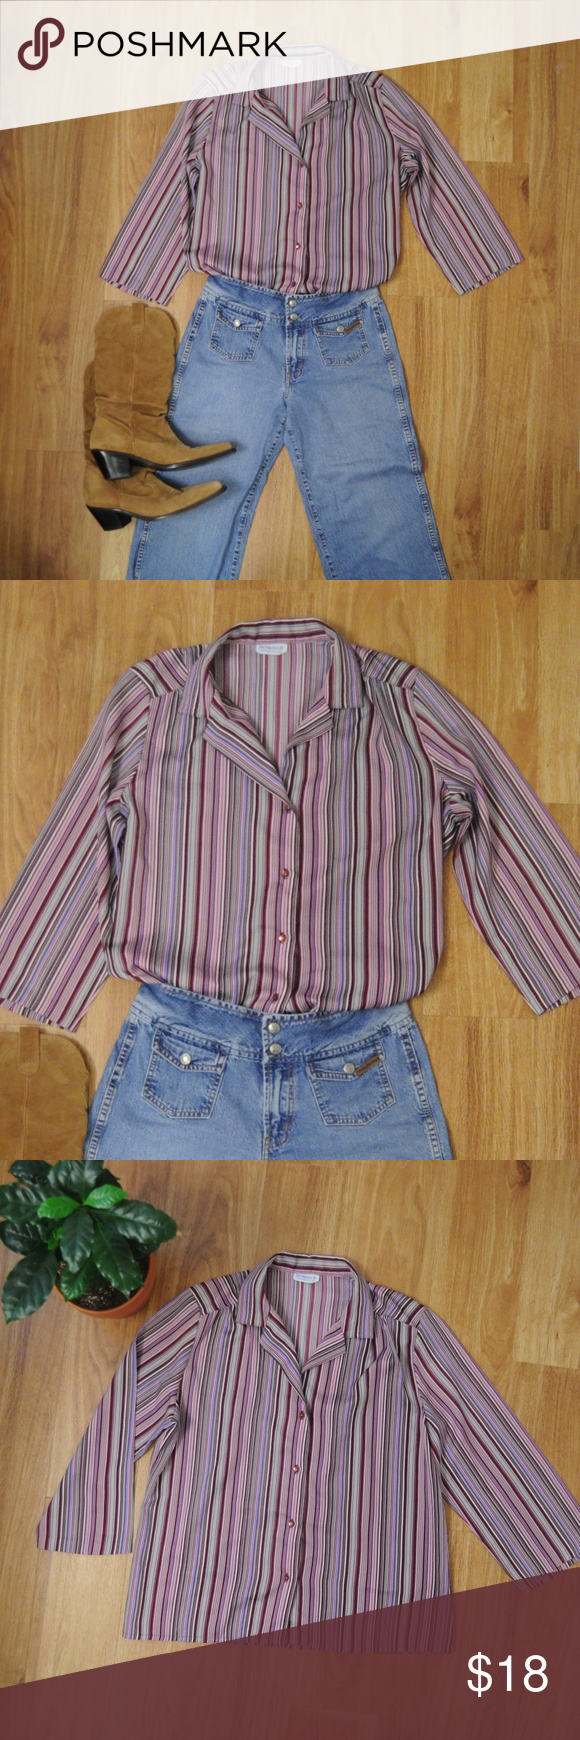 9b4ce2d50ca Vintage Levi Strauss Striped Button Up Blouse A few small snags near the  button placket. But otherwise in great condition. 🌱 Levi Strauss   Co 🌷  Wine ...